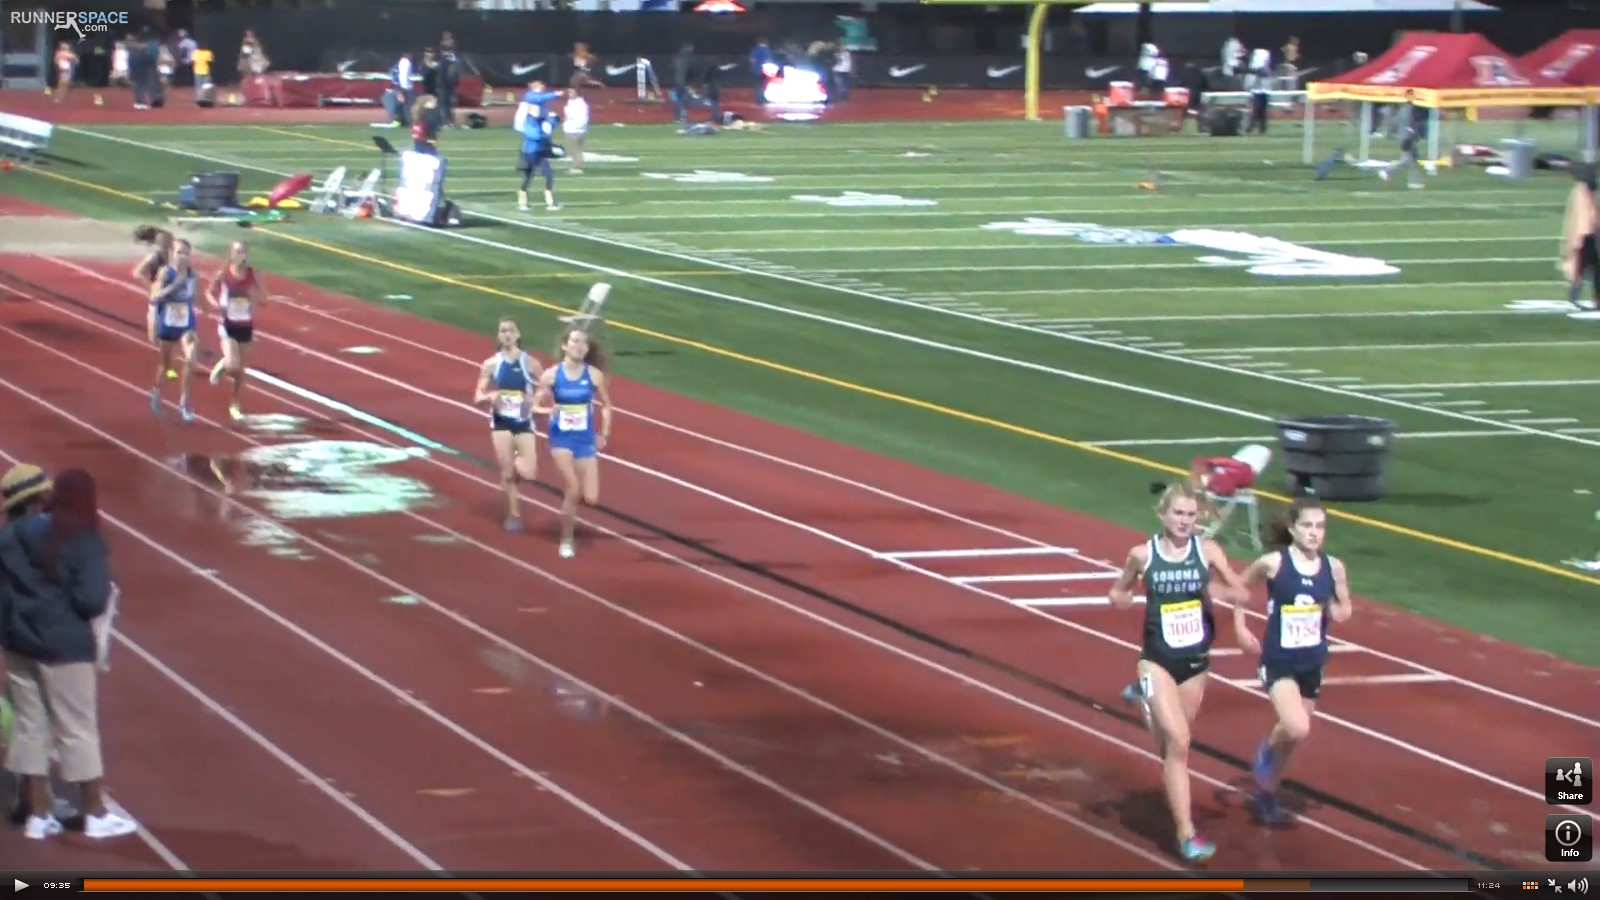 200m to go and Rylee takes the lead from DeBalsi.